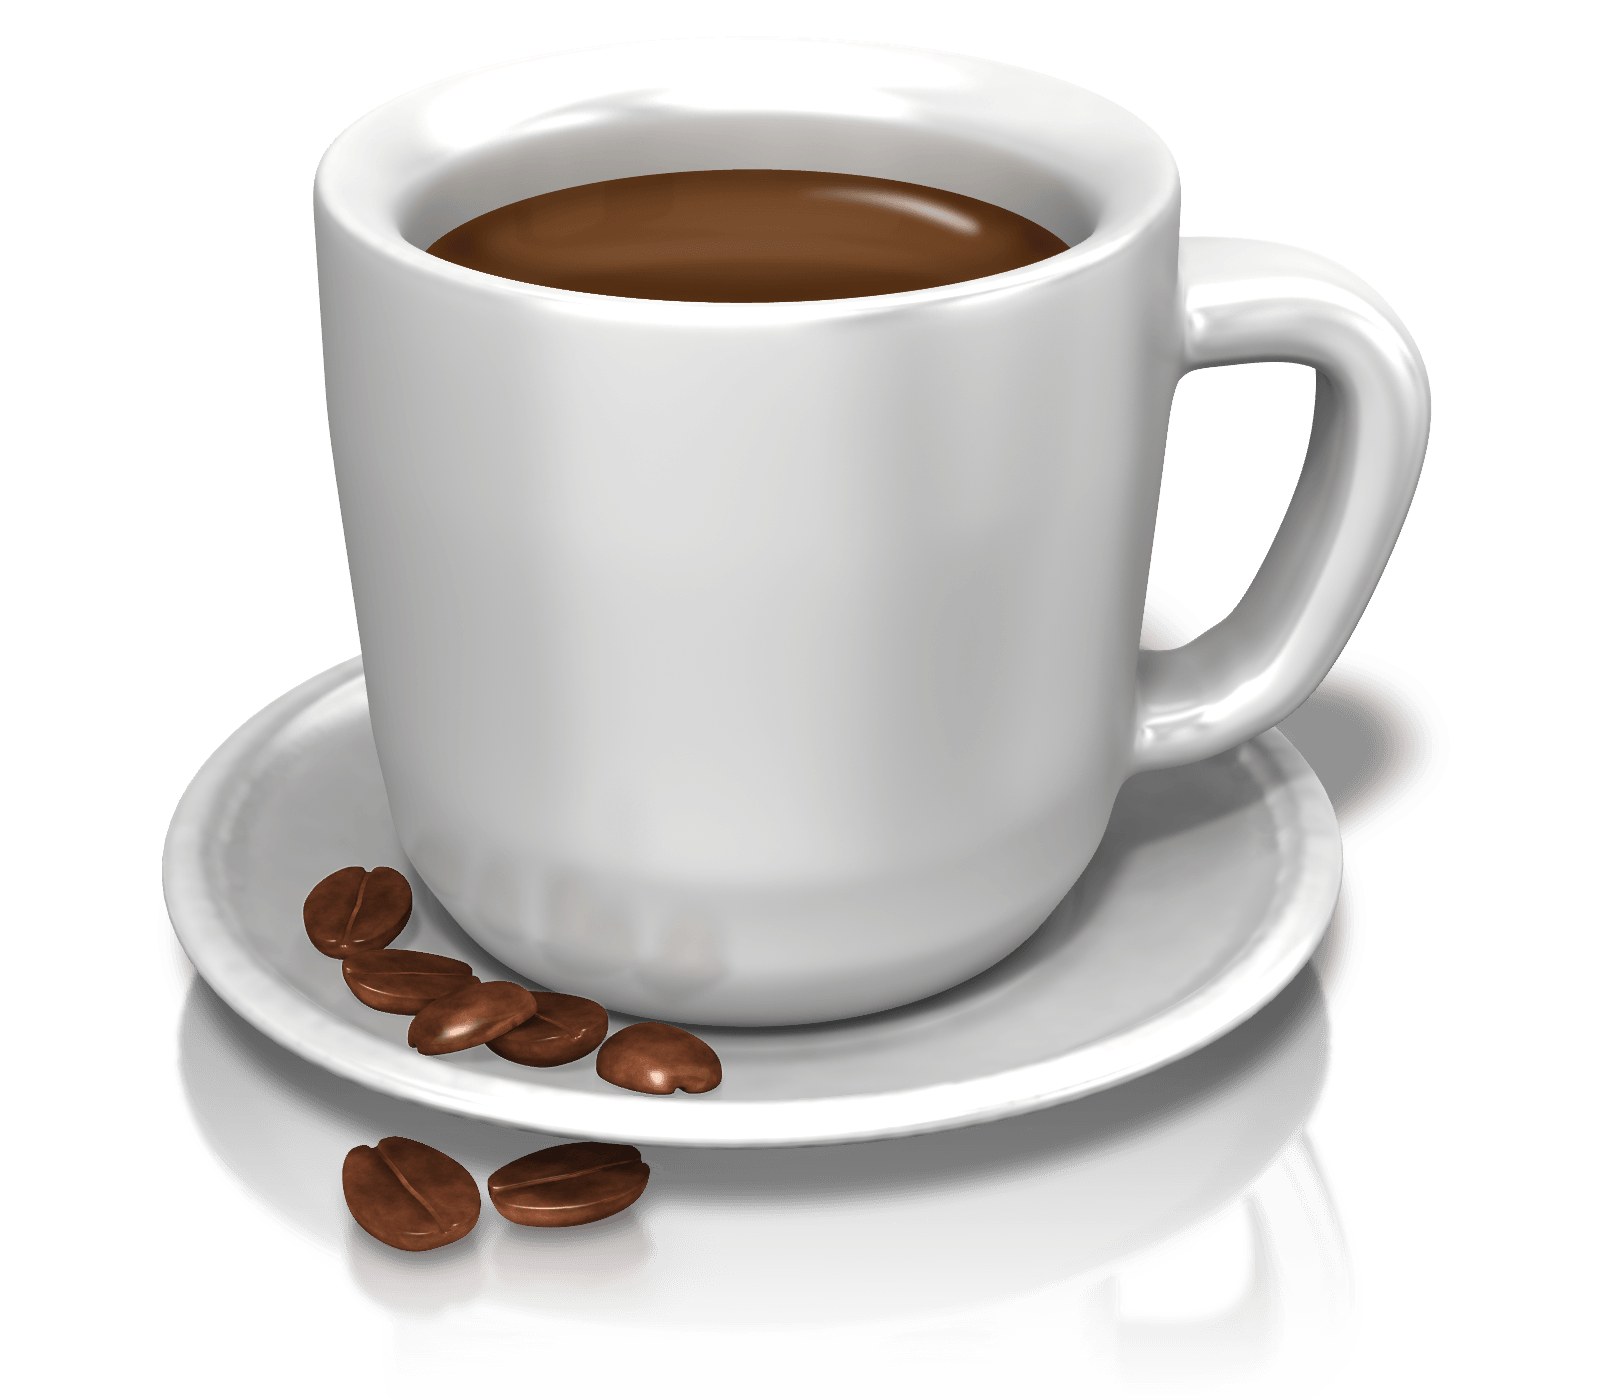 download coffee cup png image png image pngimg #12644